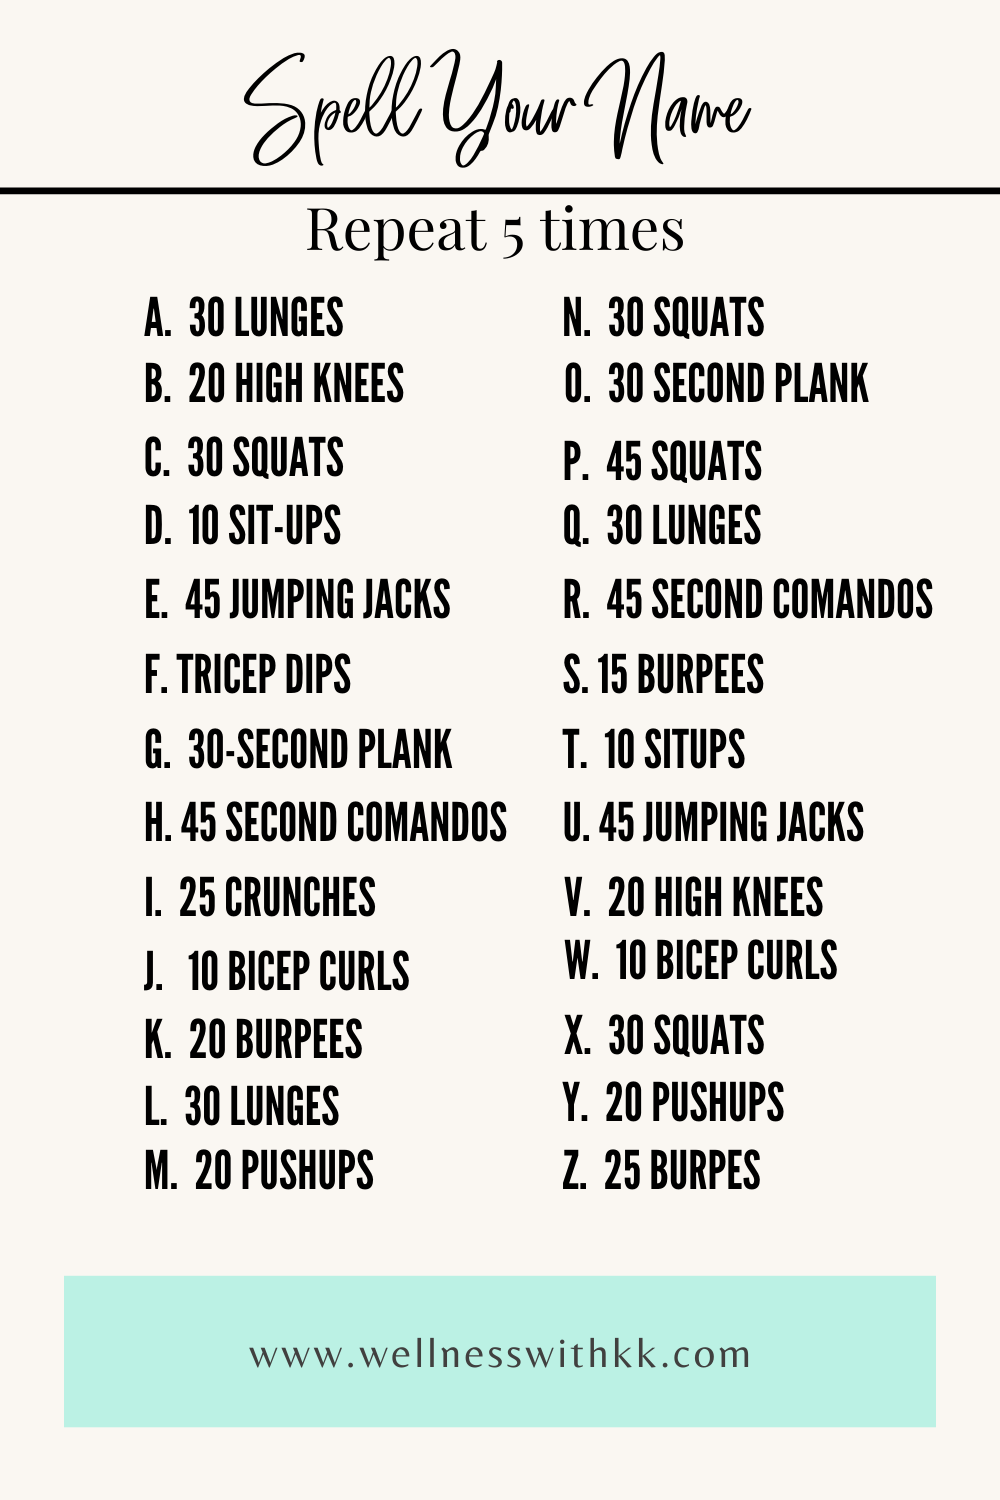 Spell Your Name Workout In 2020 Spell Your Name Workout At Home Workouts Workout